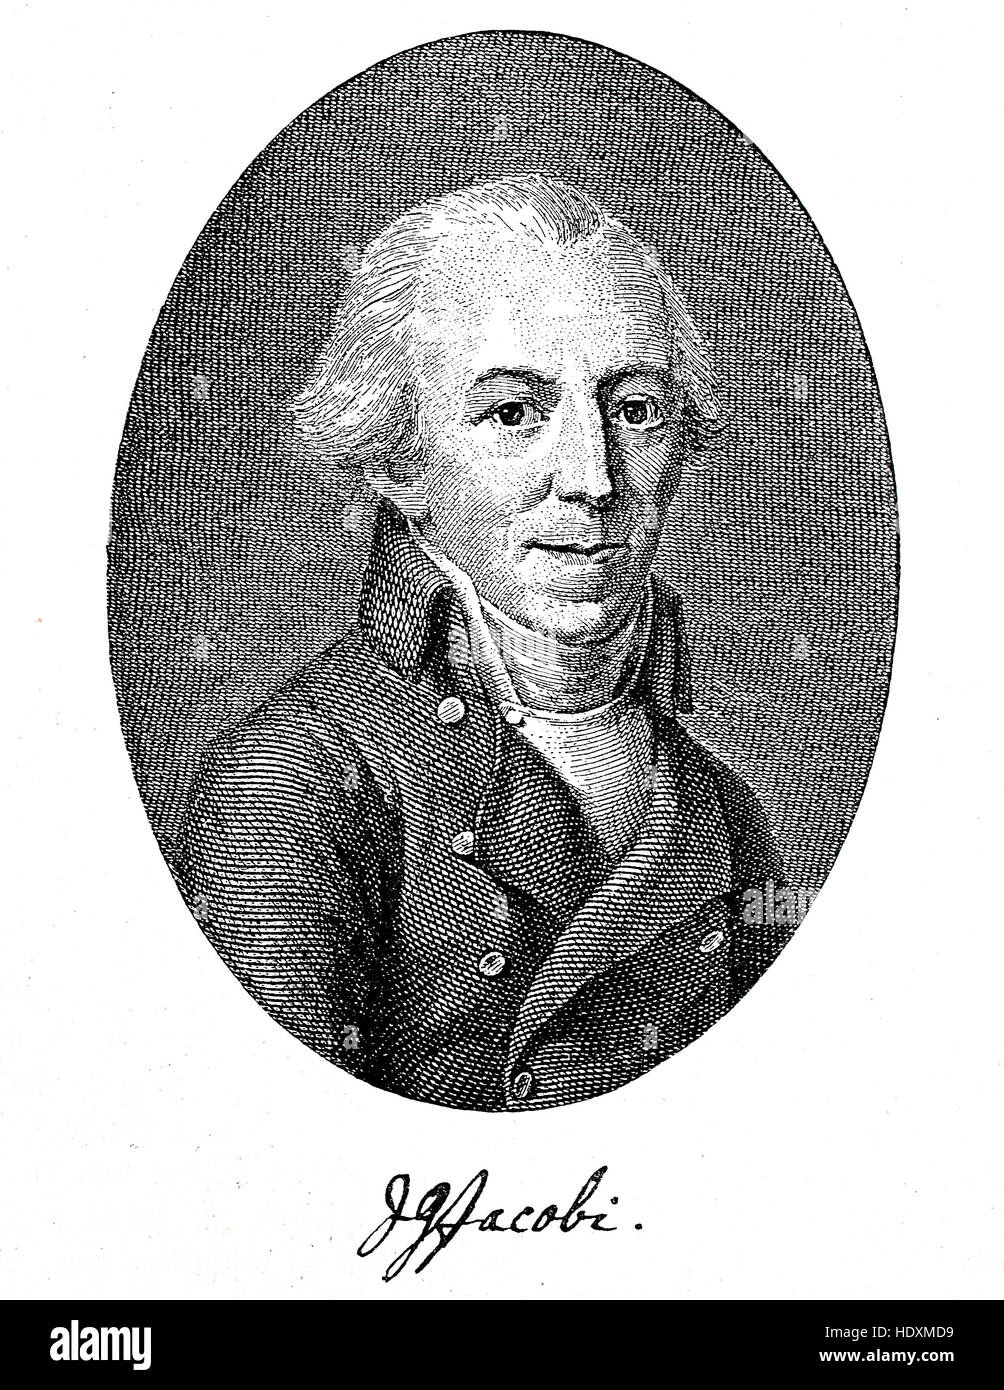 Johann Georg Jacobi, 1740-1814, a German poet and publicist, woodcut from the year 1882, digital improved - Stock Image